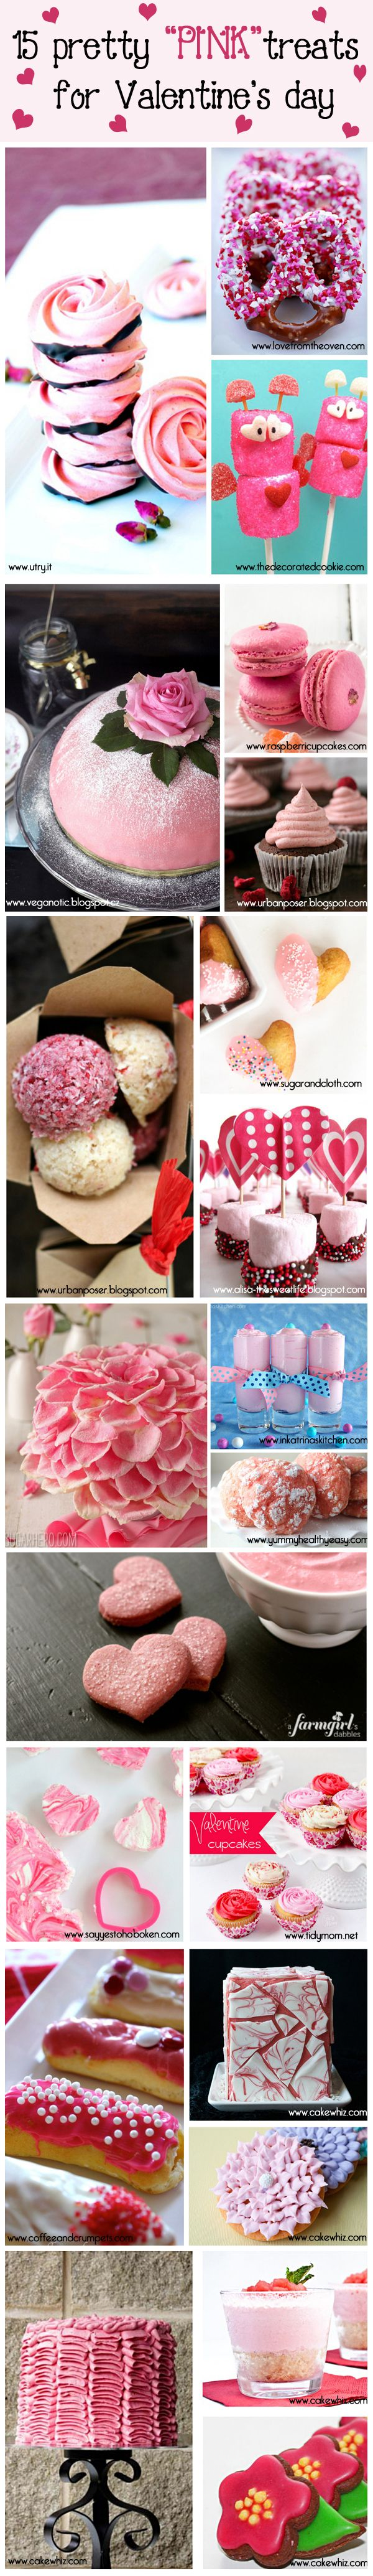 15 PRETTY PINK treats for Valentine's Day. There is something in here for everyone... cakes, cupcakes, cookies, macarons....